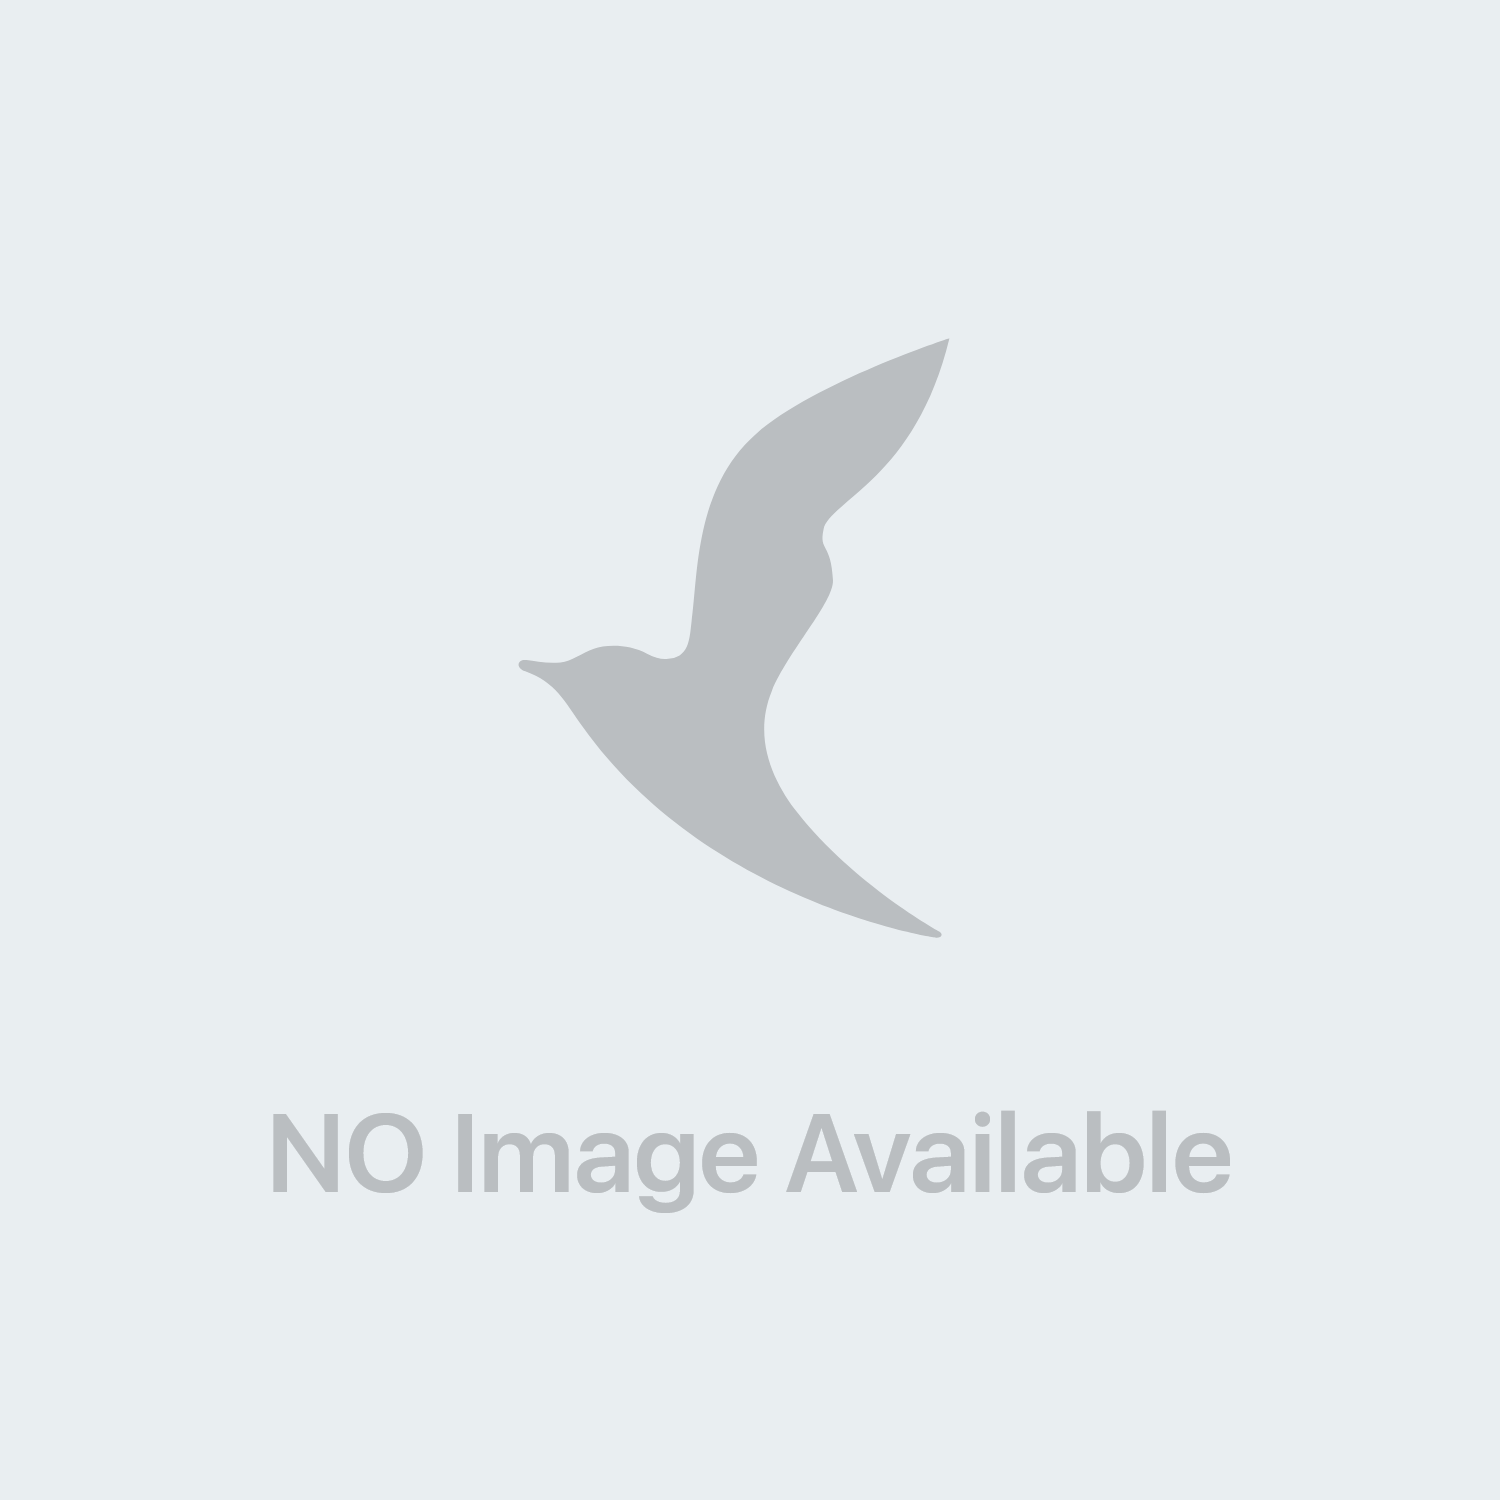 Jungle Formula Spray Forte Original Lozione Repellente Antizanzara 75 ml